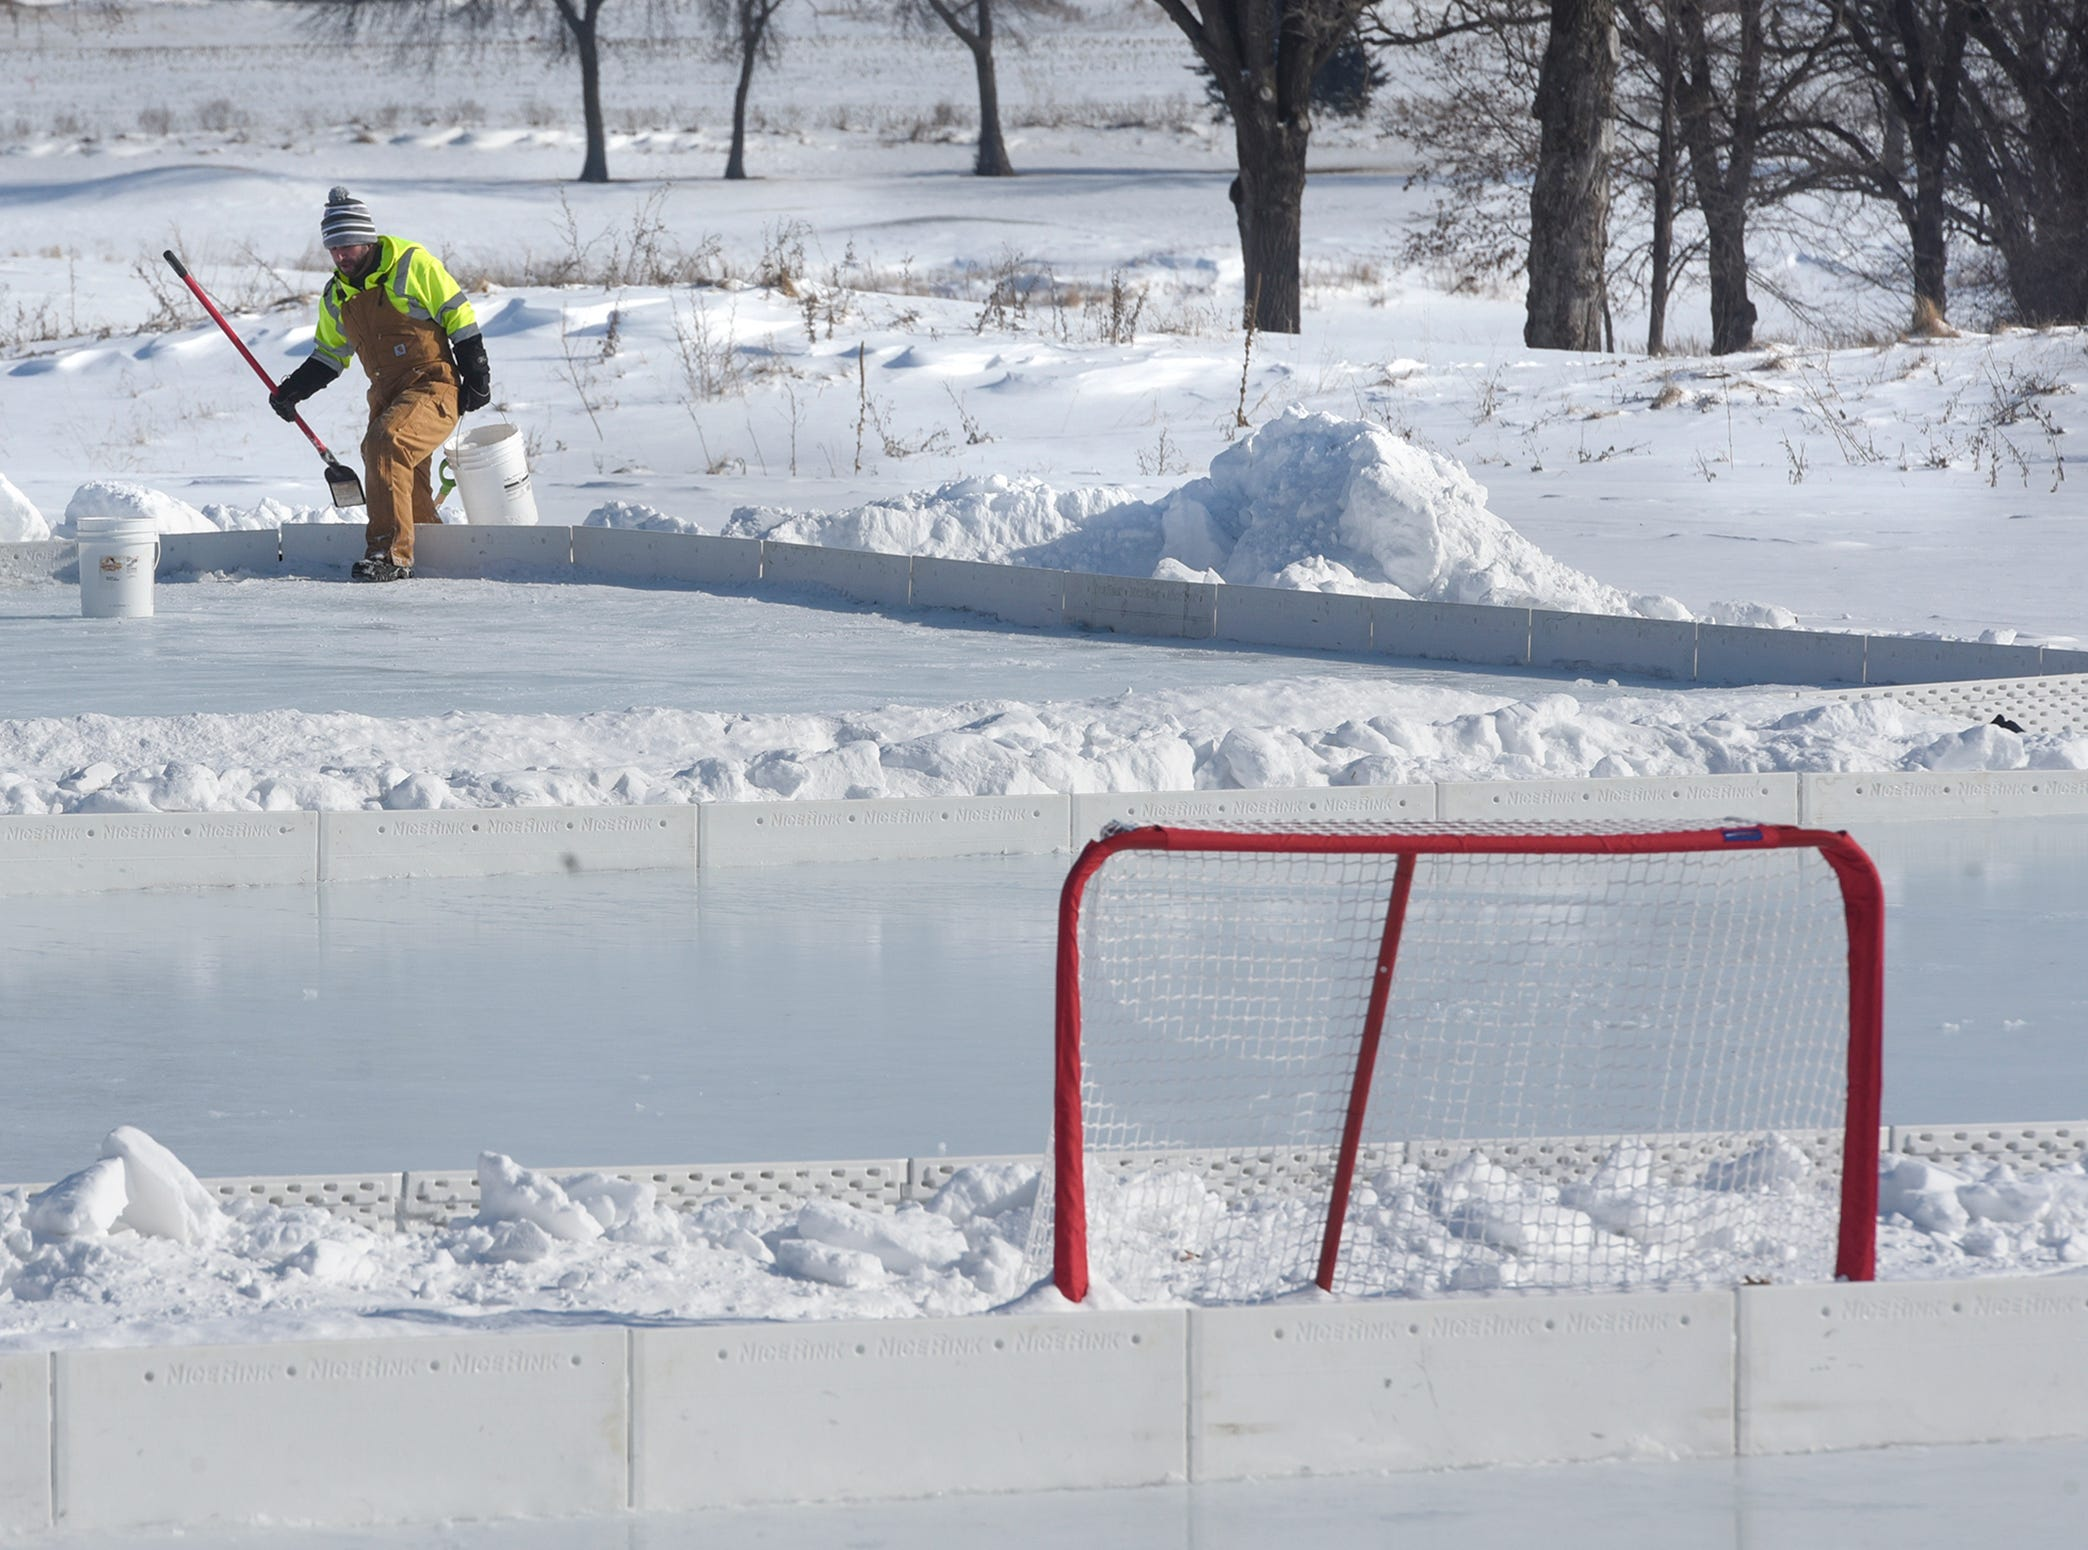 Volunteer Jeremy Koelln works to prepare one of three hockey rinks for the Granite City Outdoor Hockey Festival Friday, Feb. 1, at Blackberry Ridge Golf Club in Sartell. Competition started Friday evening and games were scheduled throughout the day Saturday at Blackberry Ridge. The first event was held in 2012 at Lake George in St. Cloud.